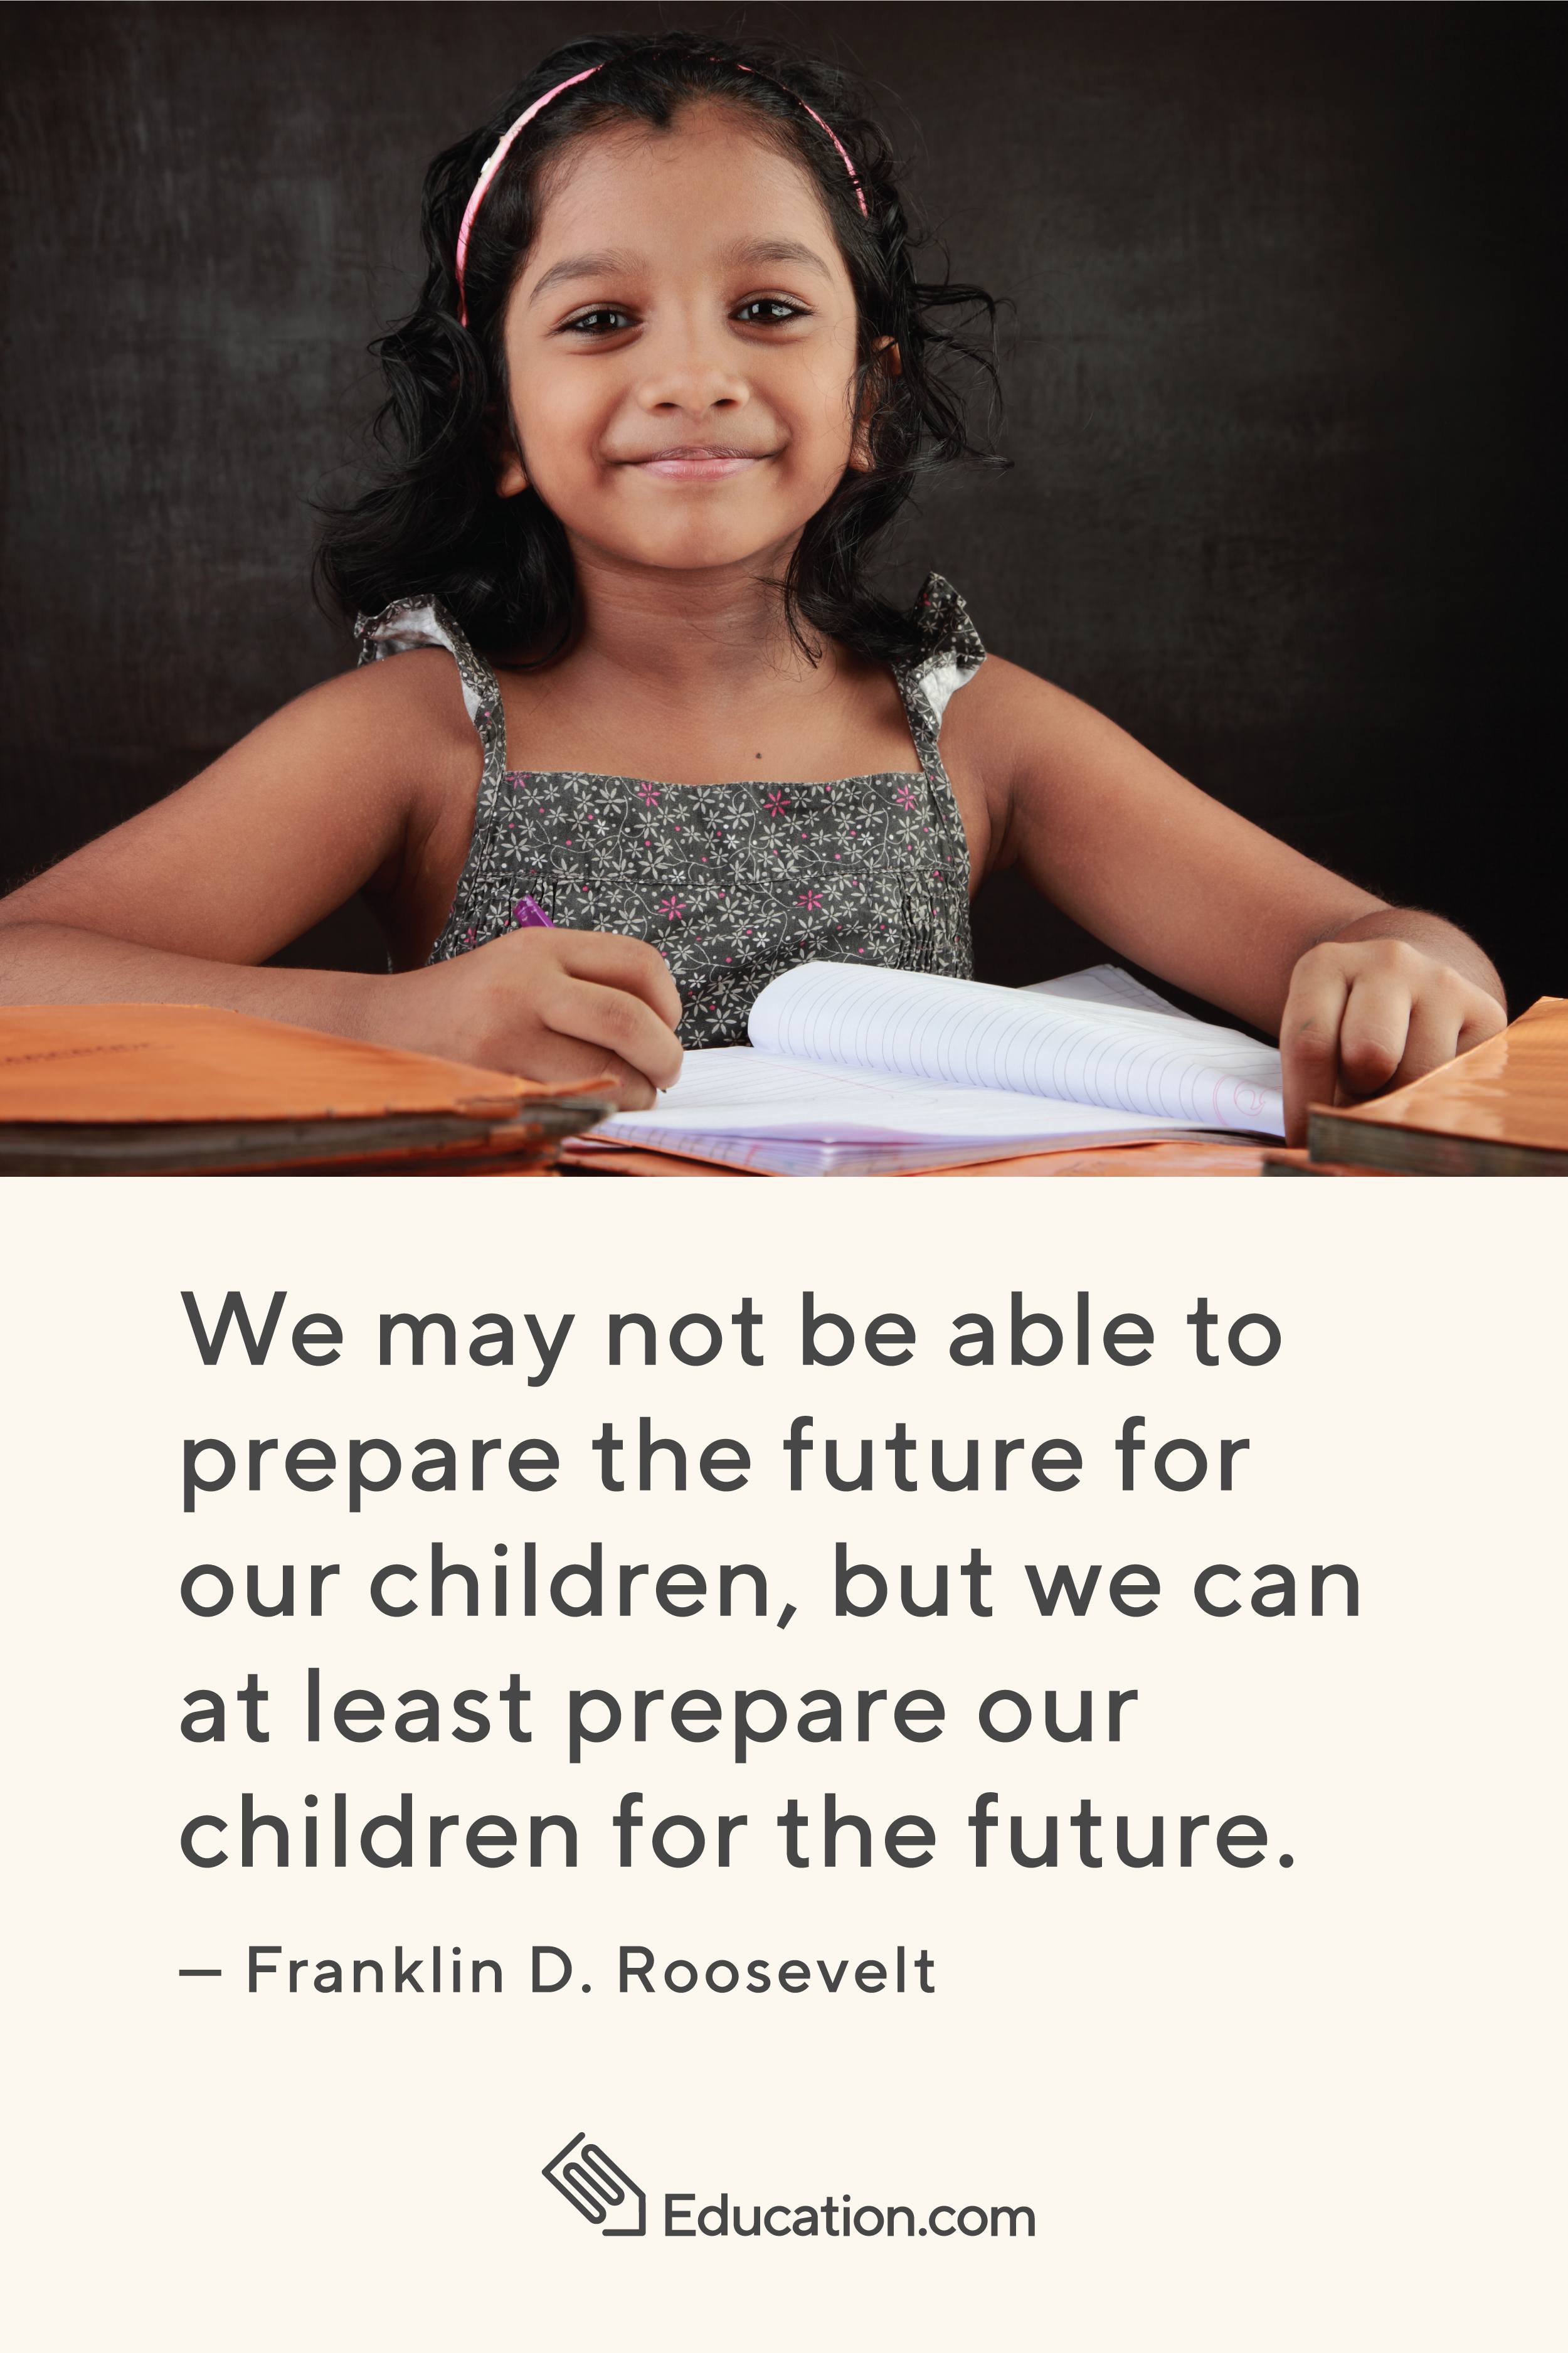 How Do You Help Your Child Prepare For The Future